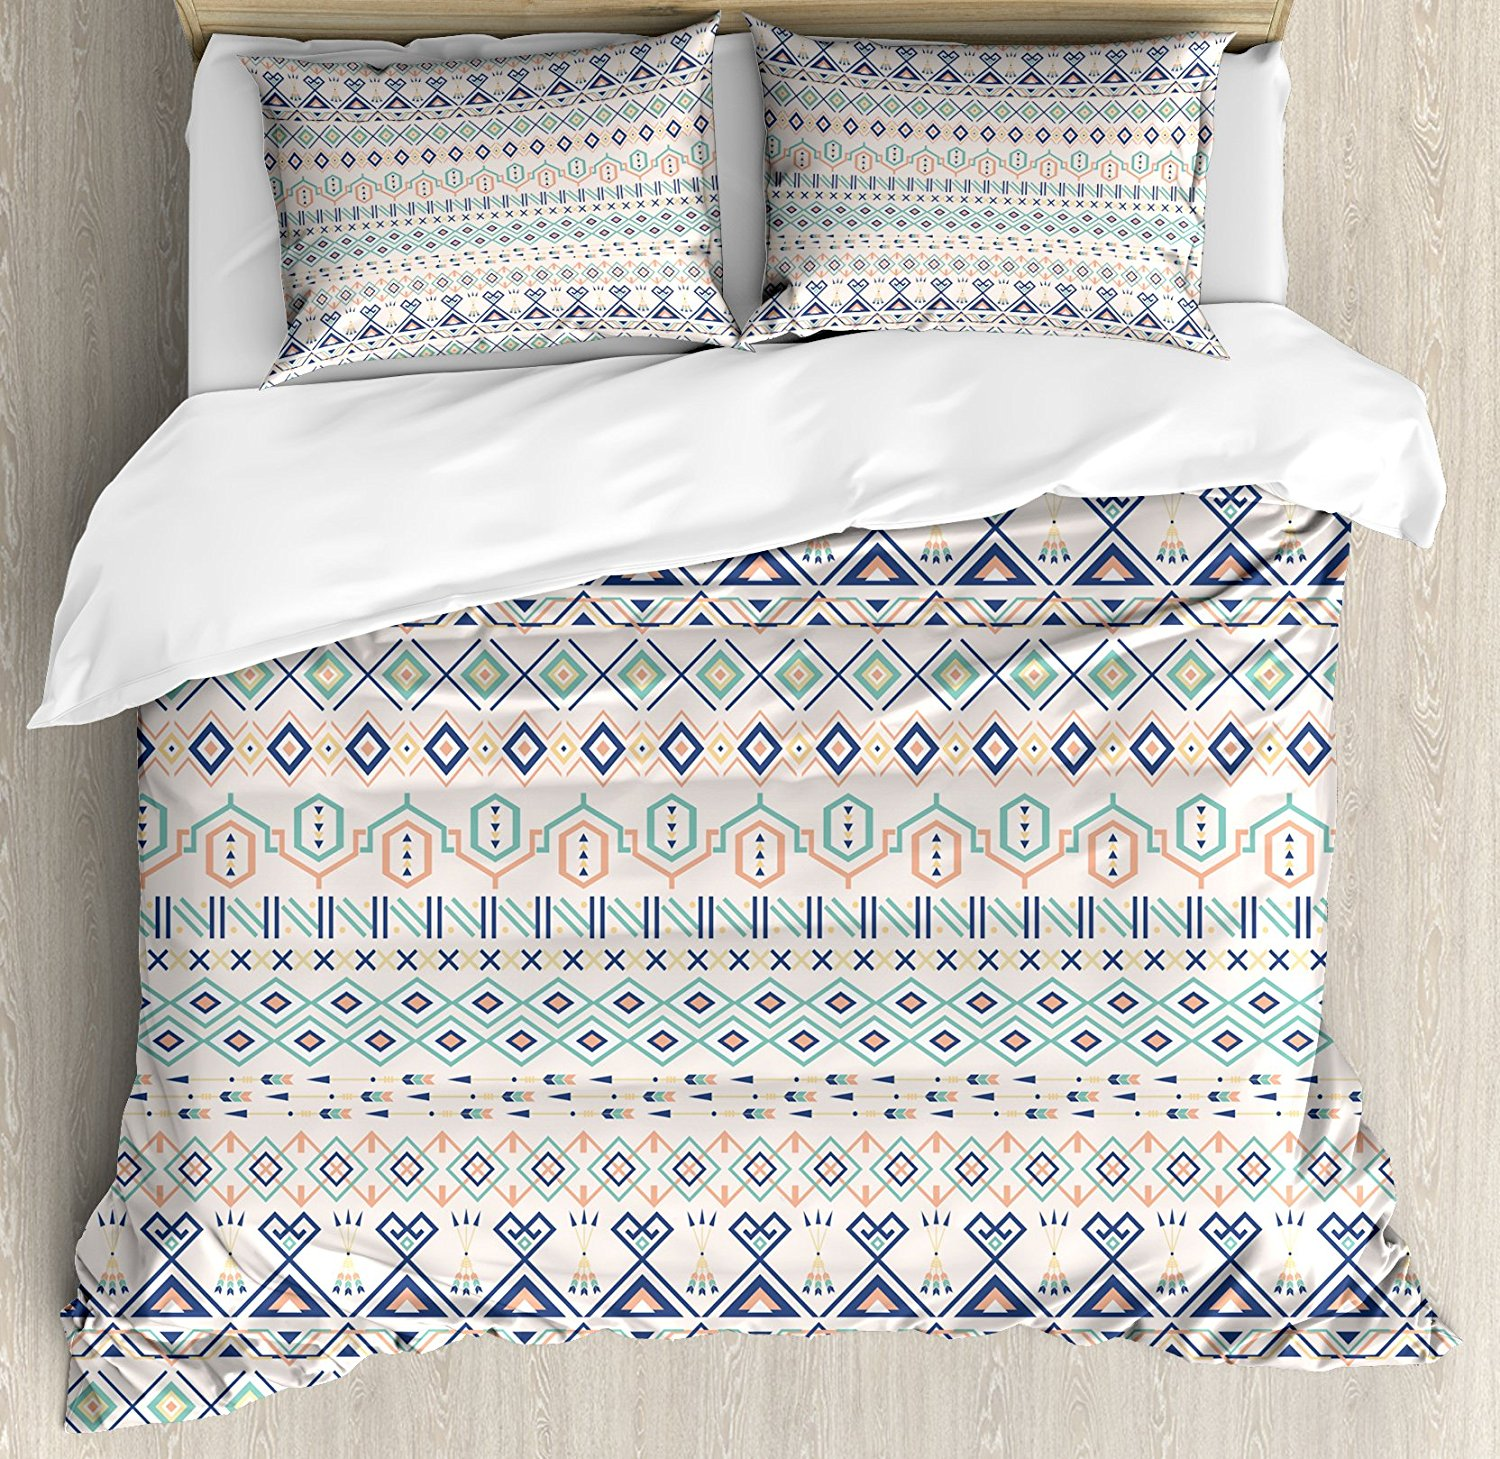 Geometric Duvet Cover Set Aztec Motifs Triangles Squares Artful Folk Inspiration Tribal Image Bedding With 2 Pillow Shams In Sets From Home